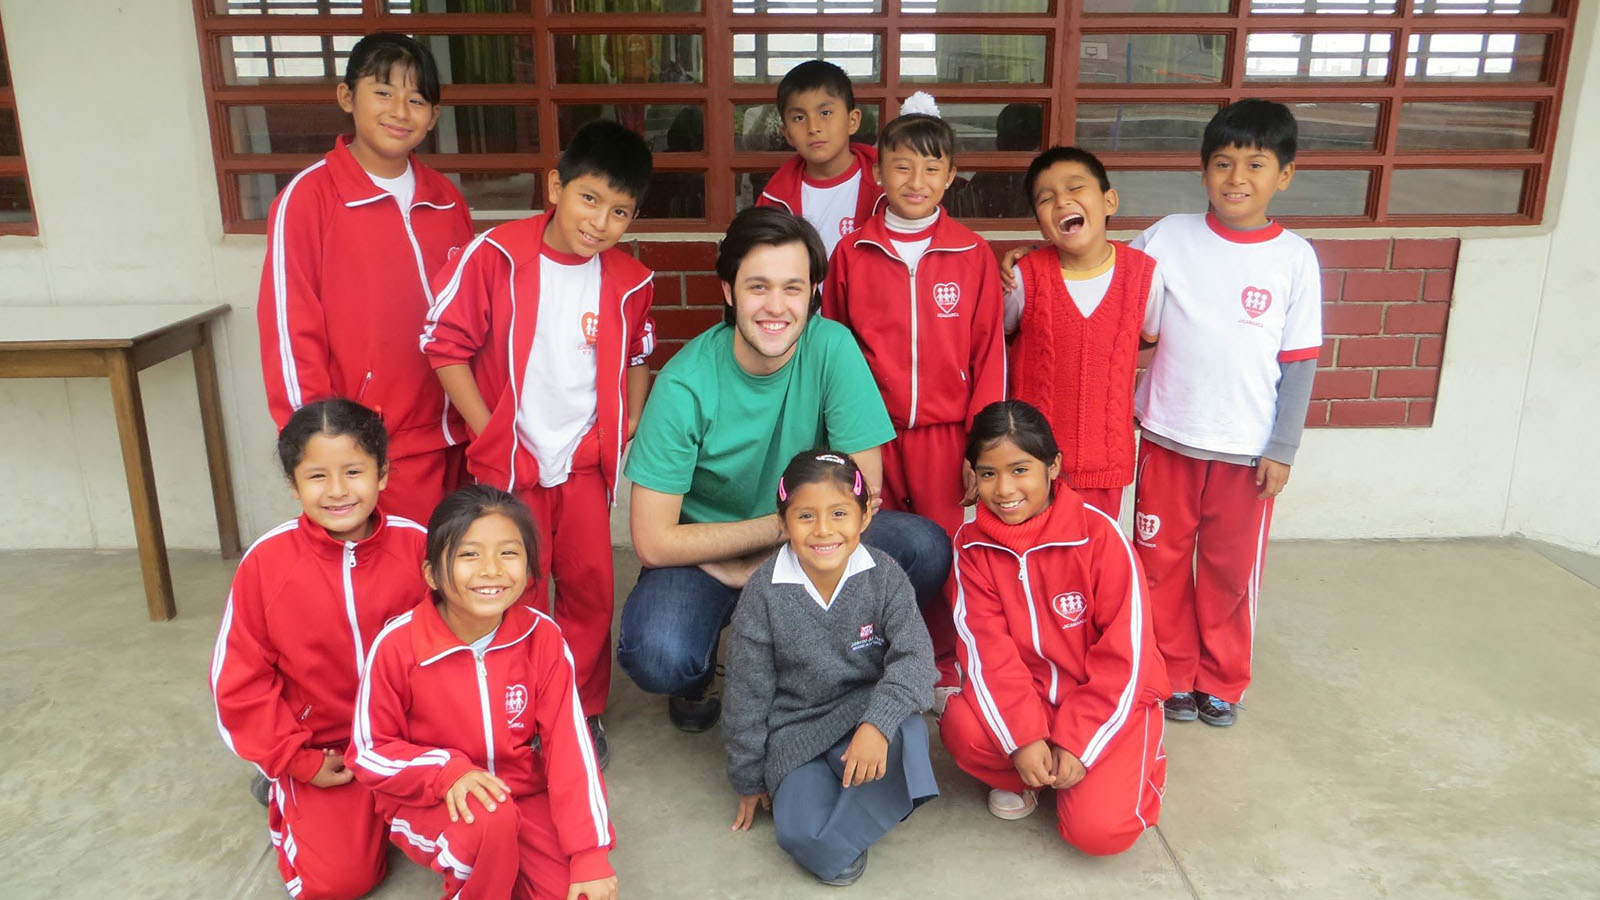 One of Entreculturas volunteers poses with schoolchildren